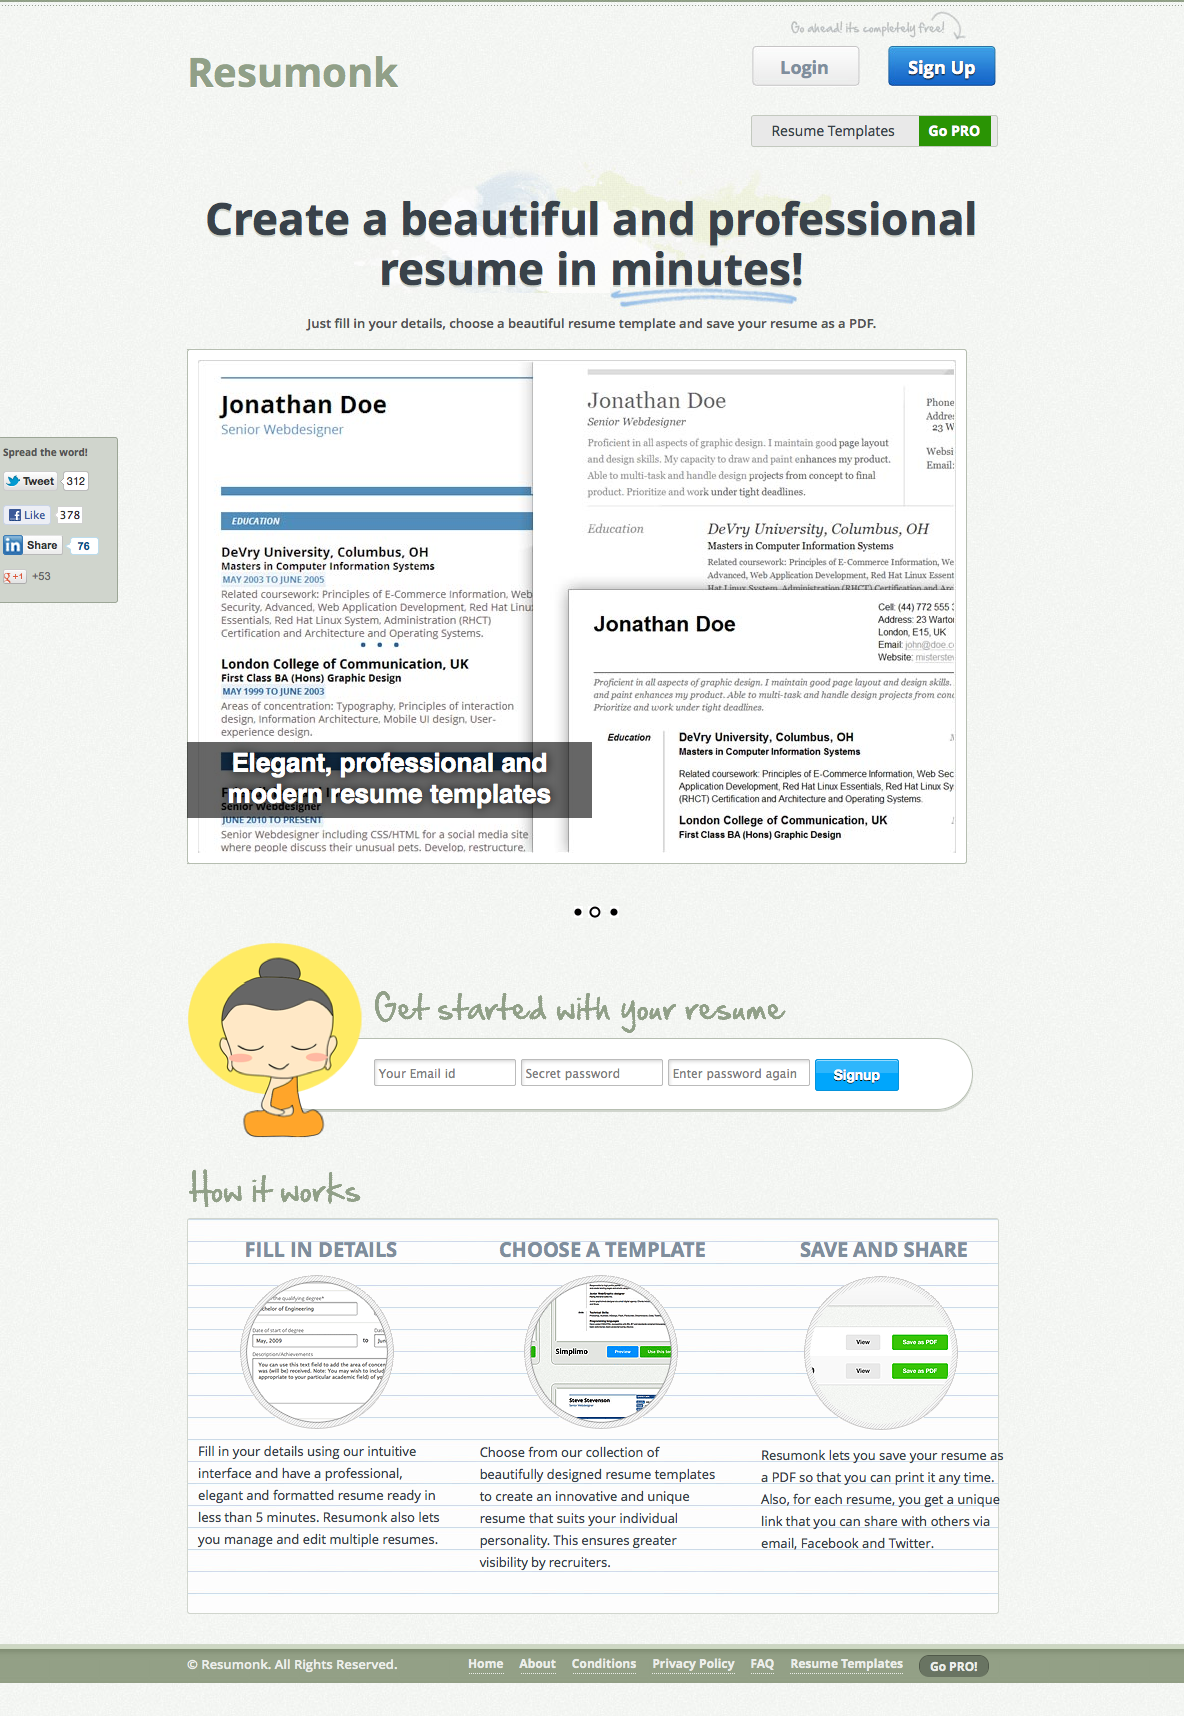 Resumonk Create a beautiful and professional resume in